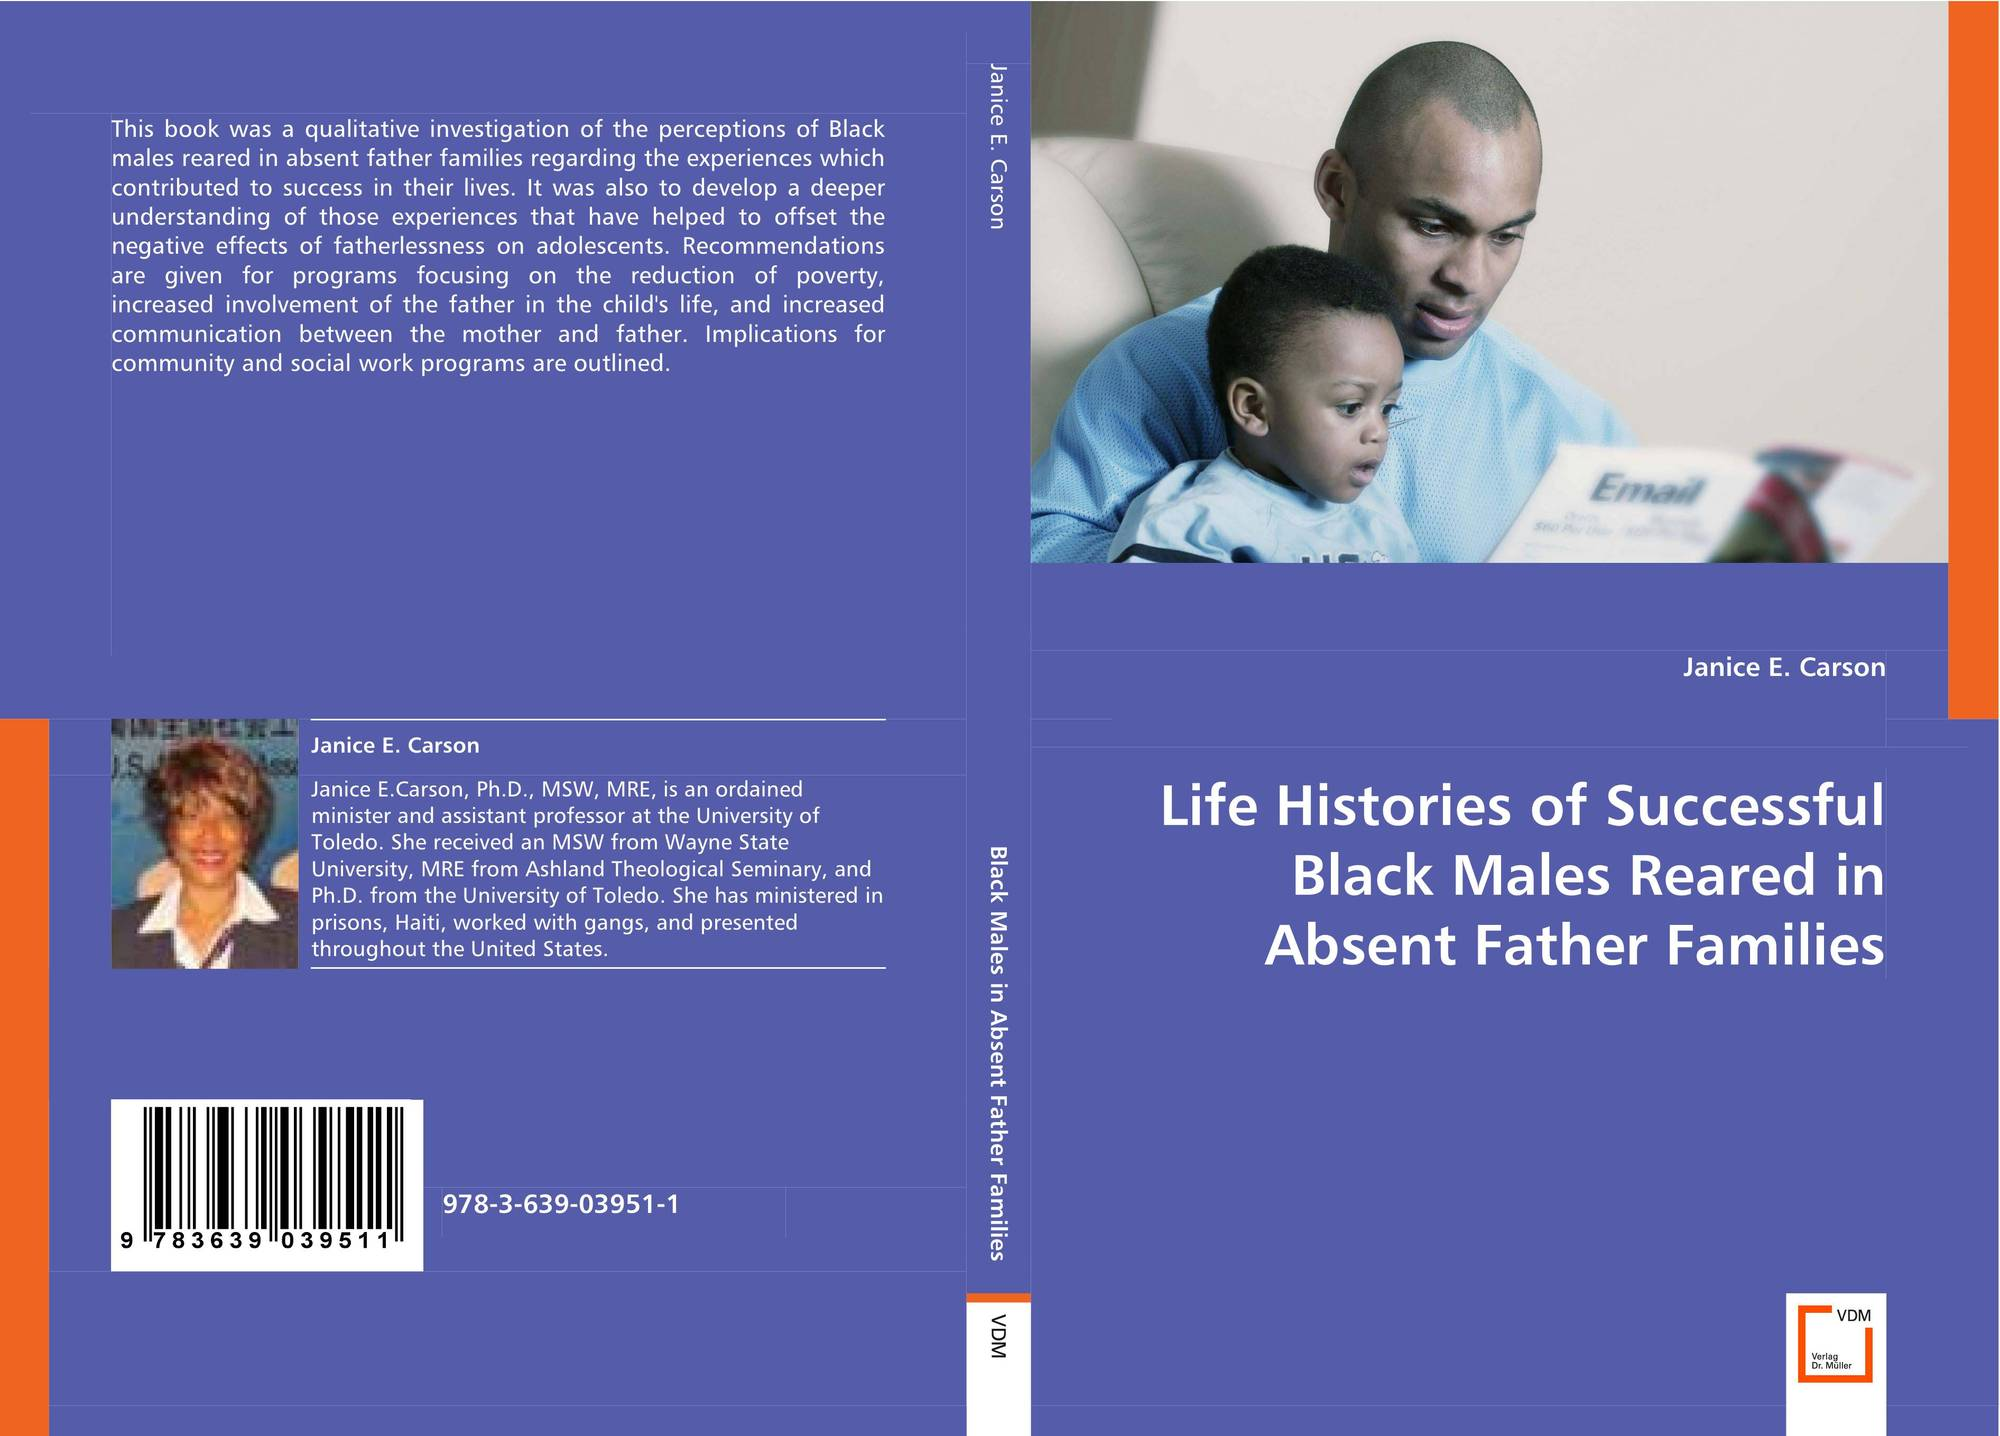 Life Histories of Successful Black Males Reared in Absent